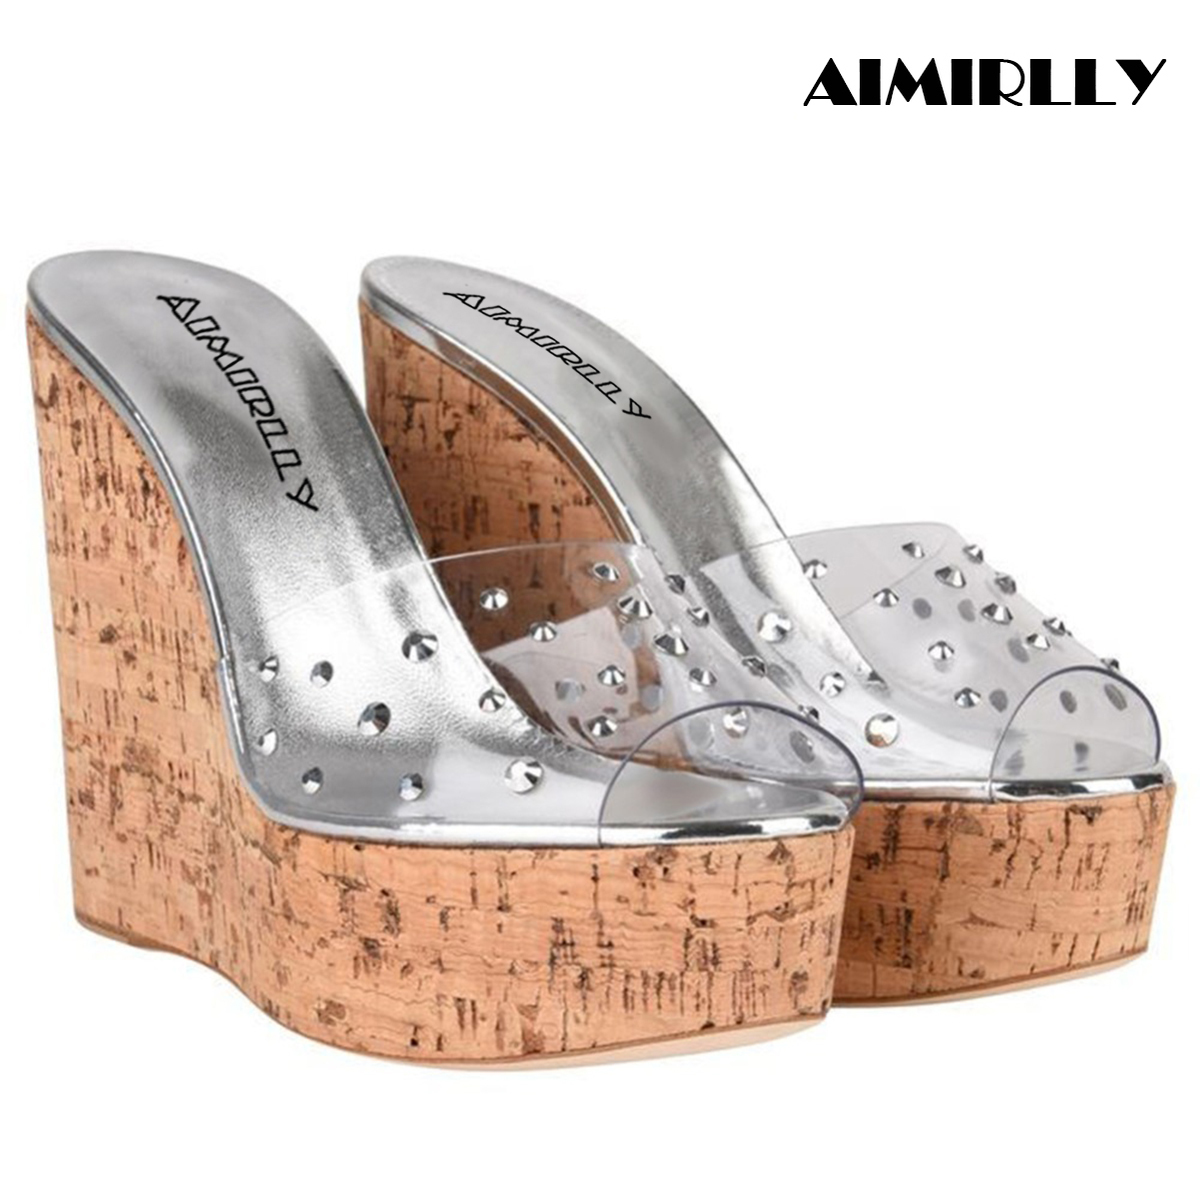 Aimirlly Sandals Slip Cork Wedge Women Shoes Comfortable High-Heel Transparent Summer